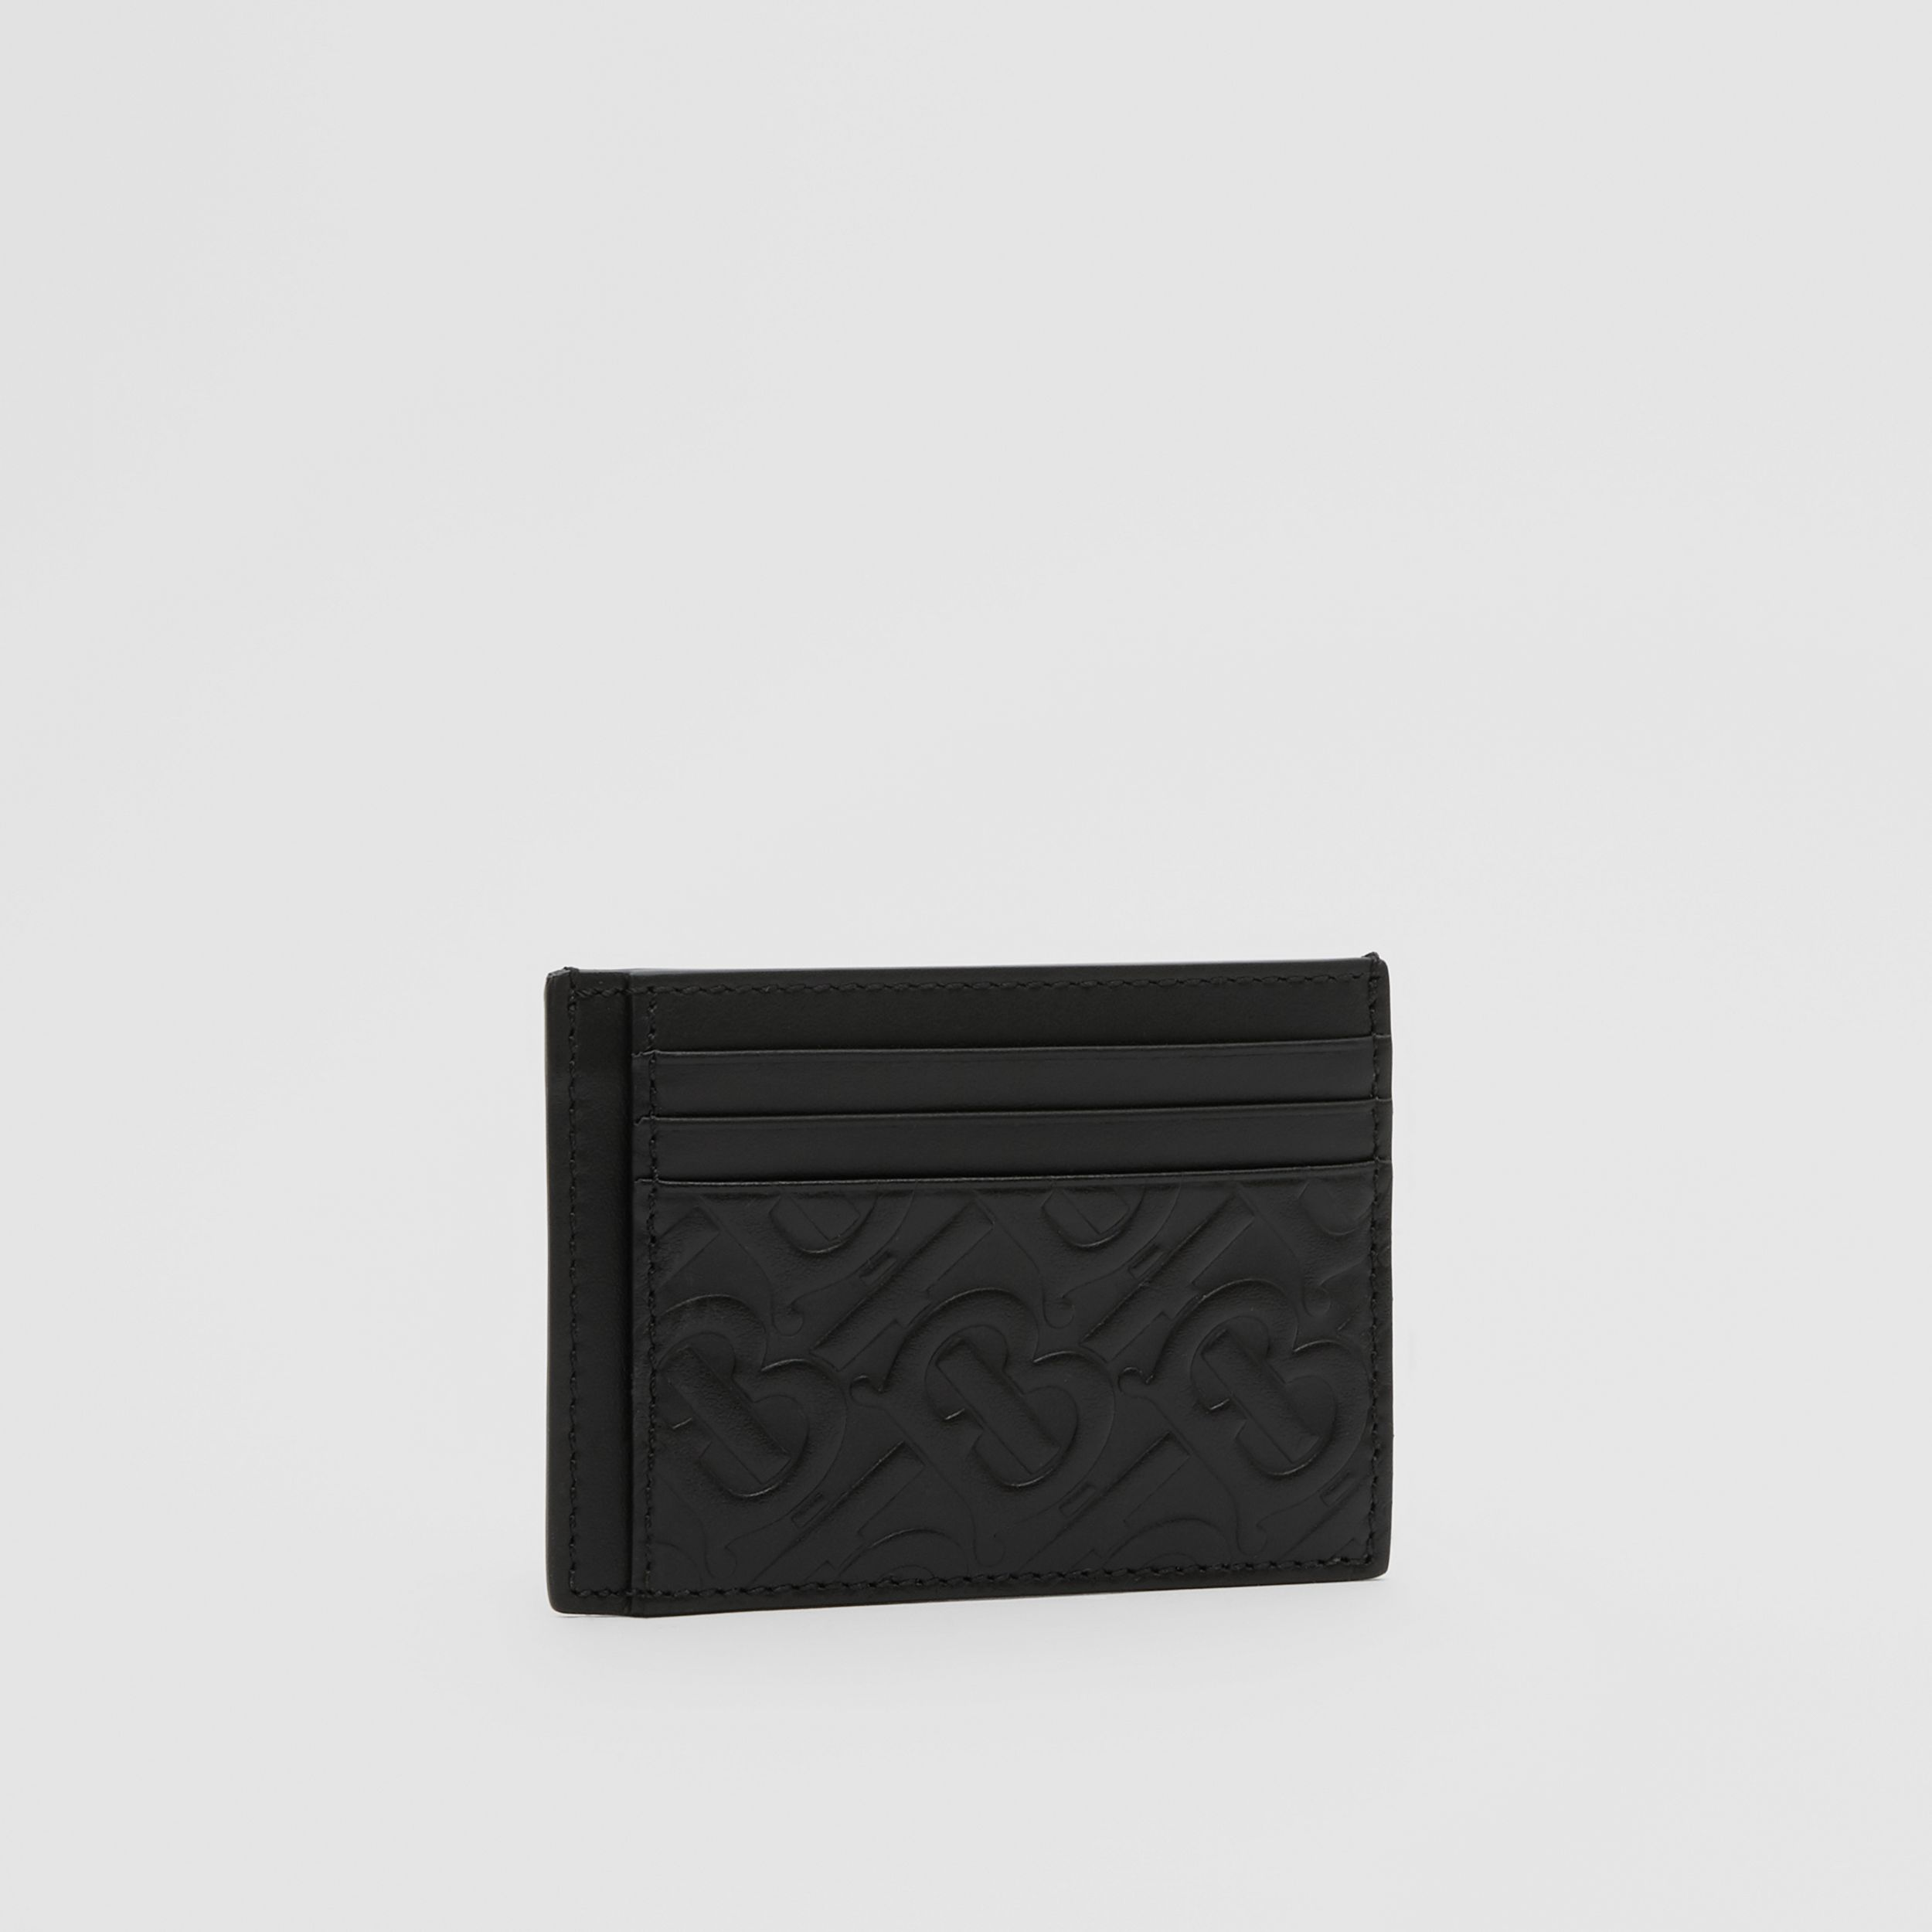 Monogram Leather Card Case in Black - Men | Burberry - 4